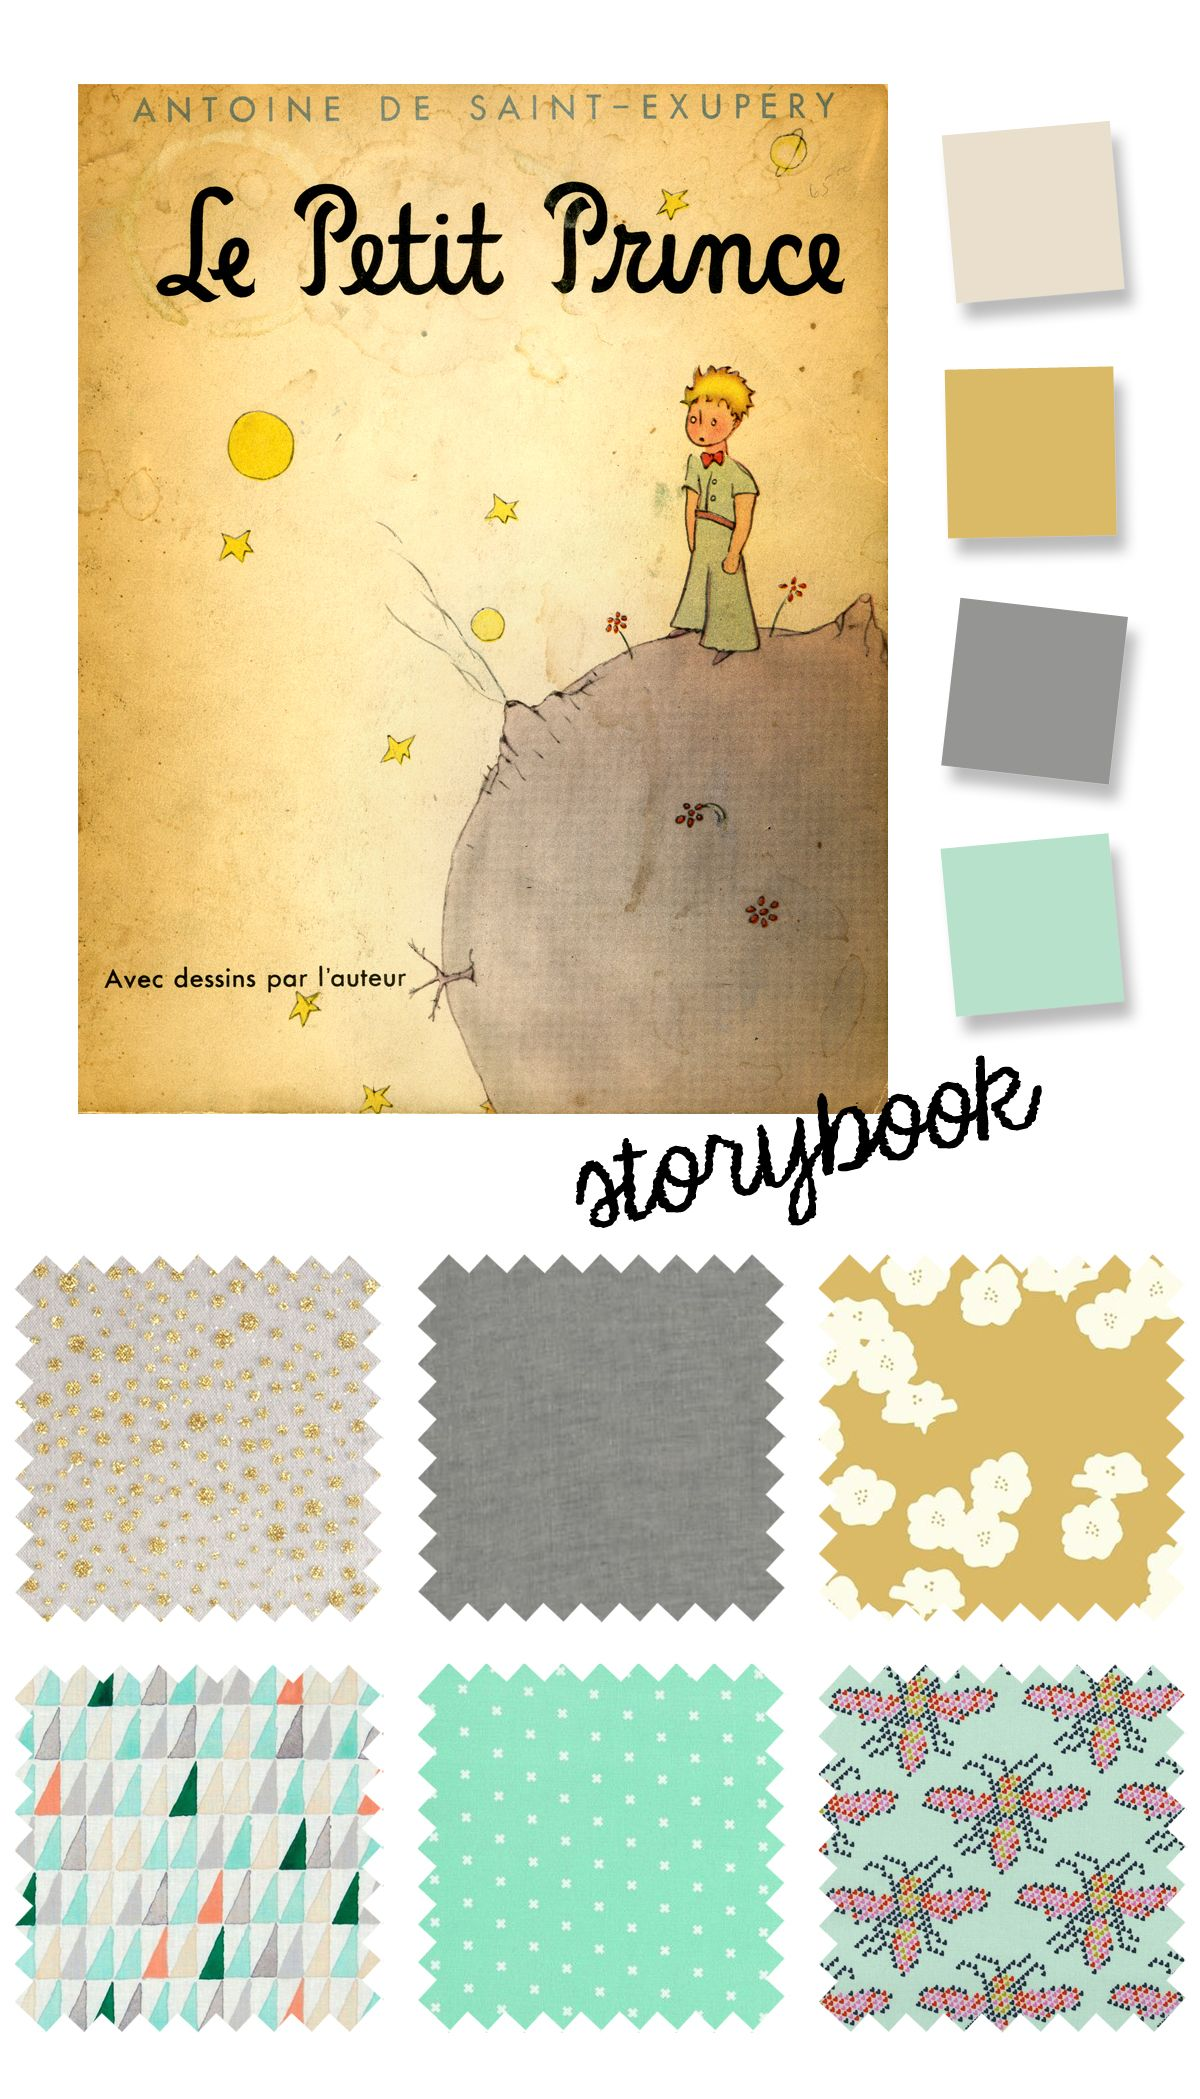 Book color palette - A Color Palette Inspired By The Little Prince Book Cover For The Optional Storybook